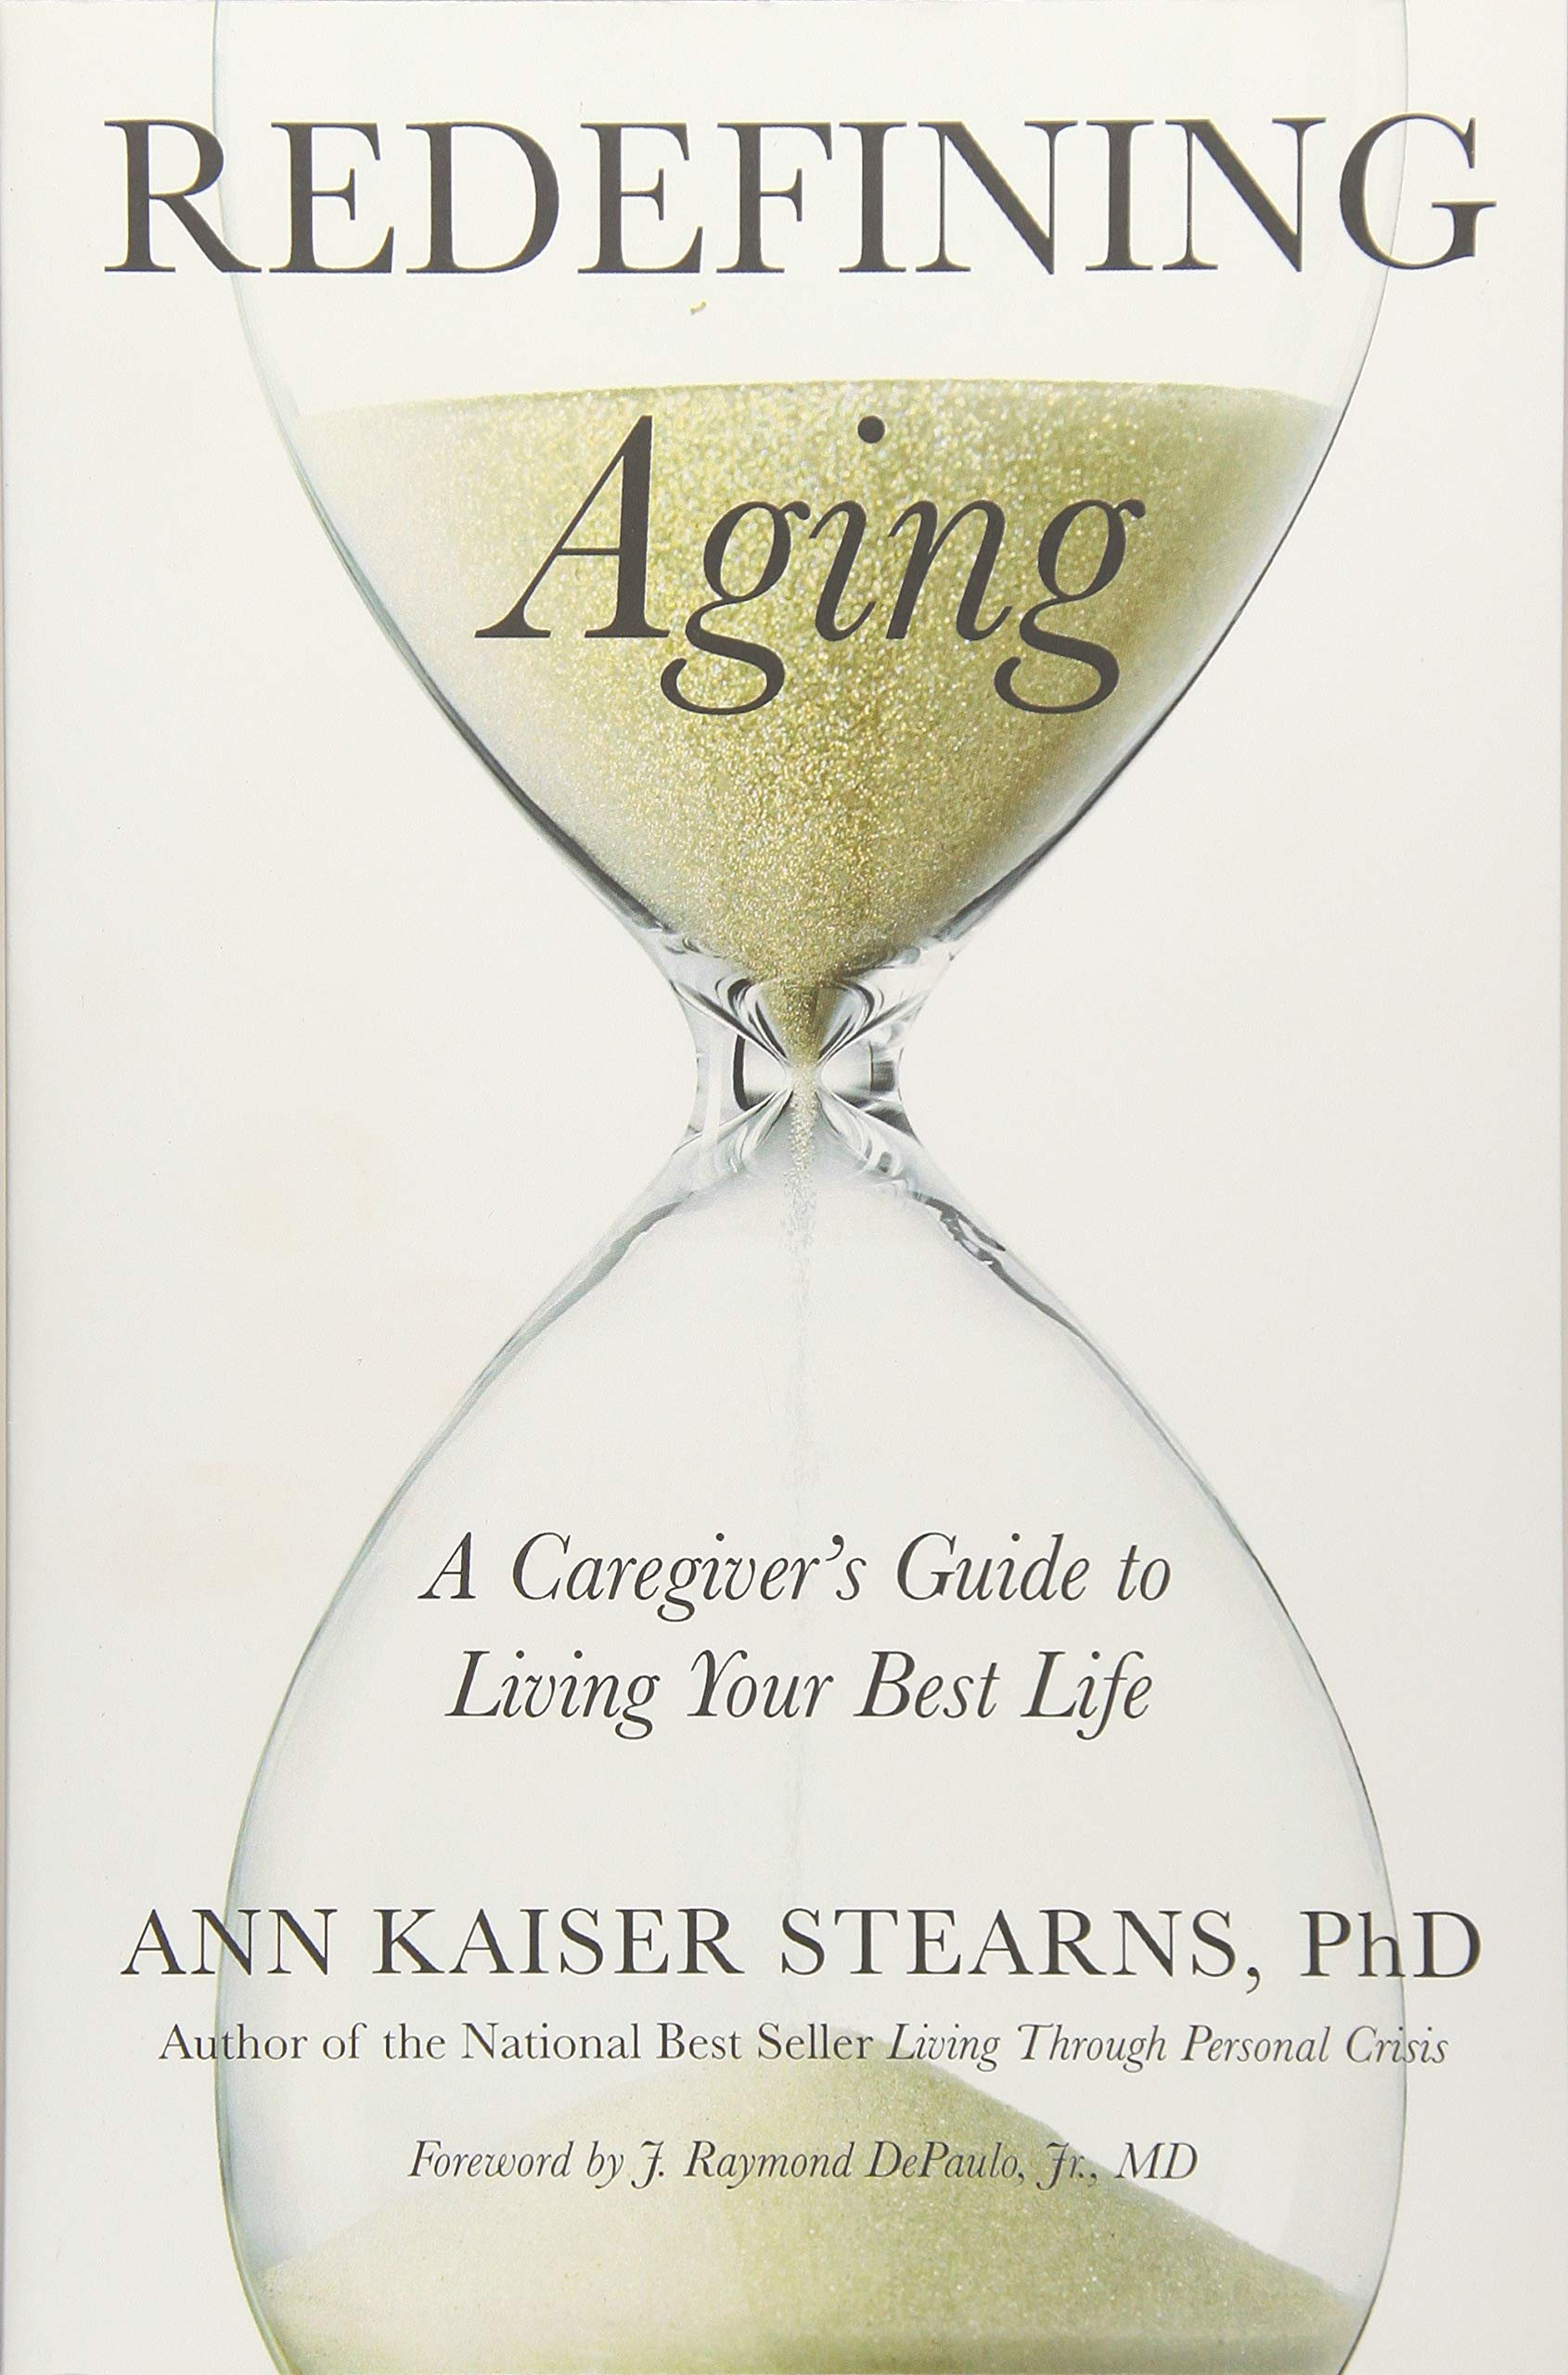 Image OfRedefining Aging: A Caregiver's Guide To Living Your Best Life